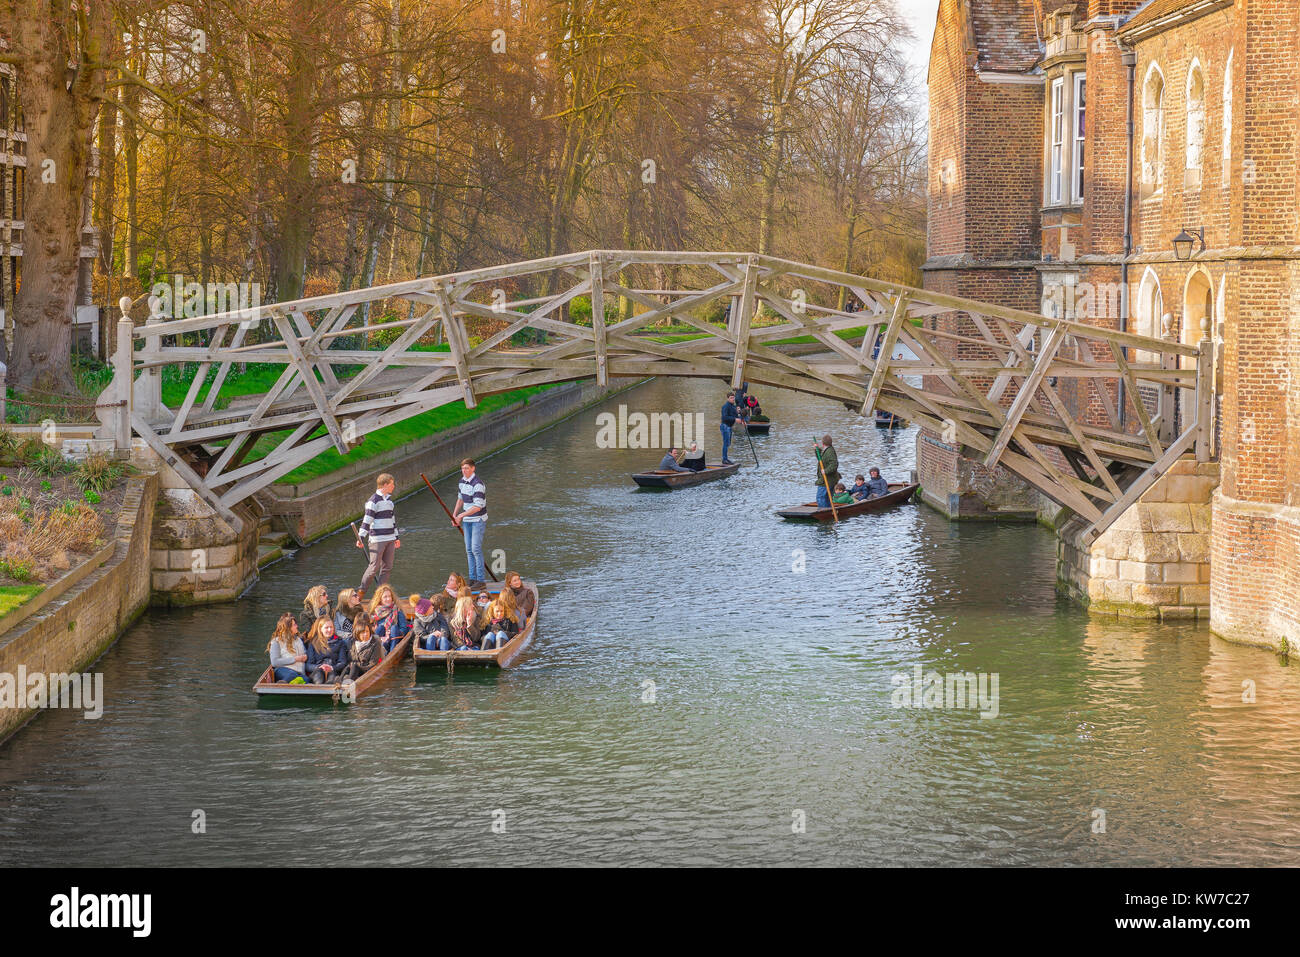 Cambridge punting, on a spring morning in Cambridge, UK, tourists ride in punts on the River Cam, gliding under - Stock Image